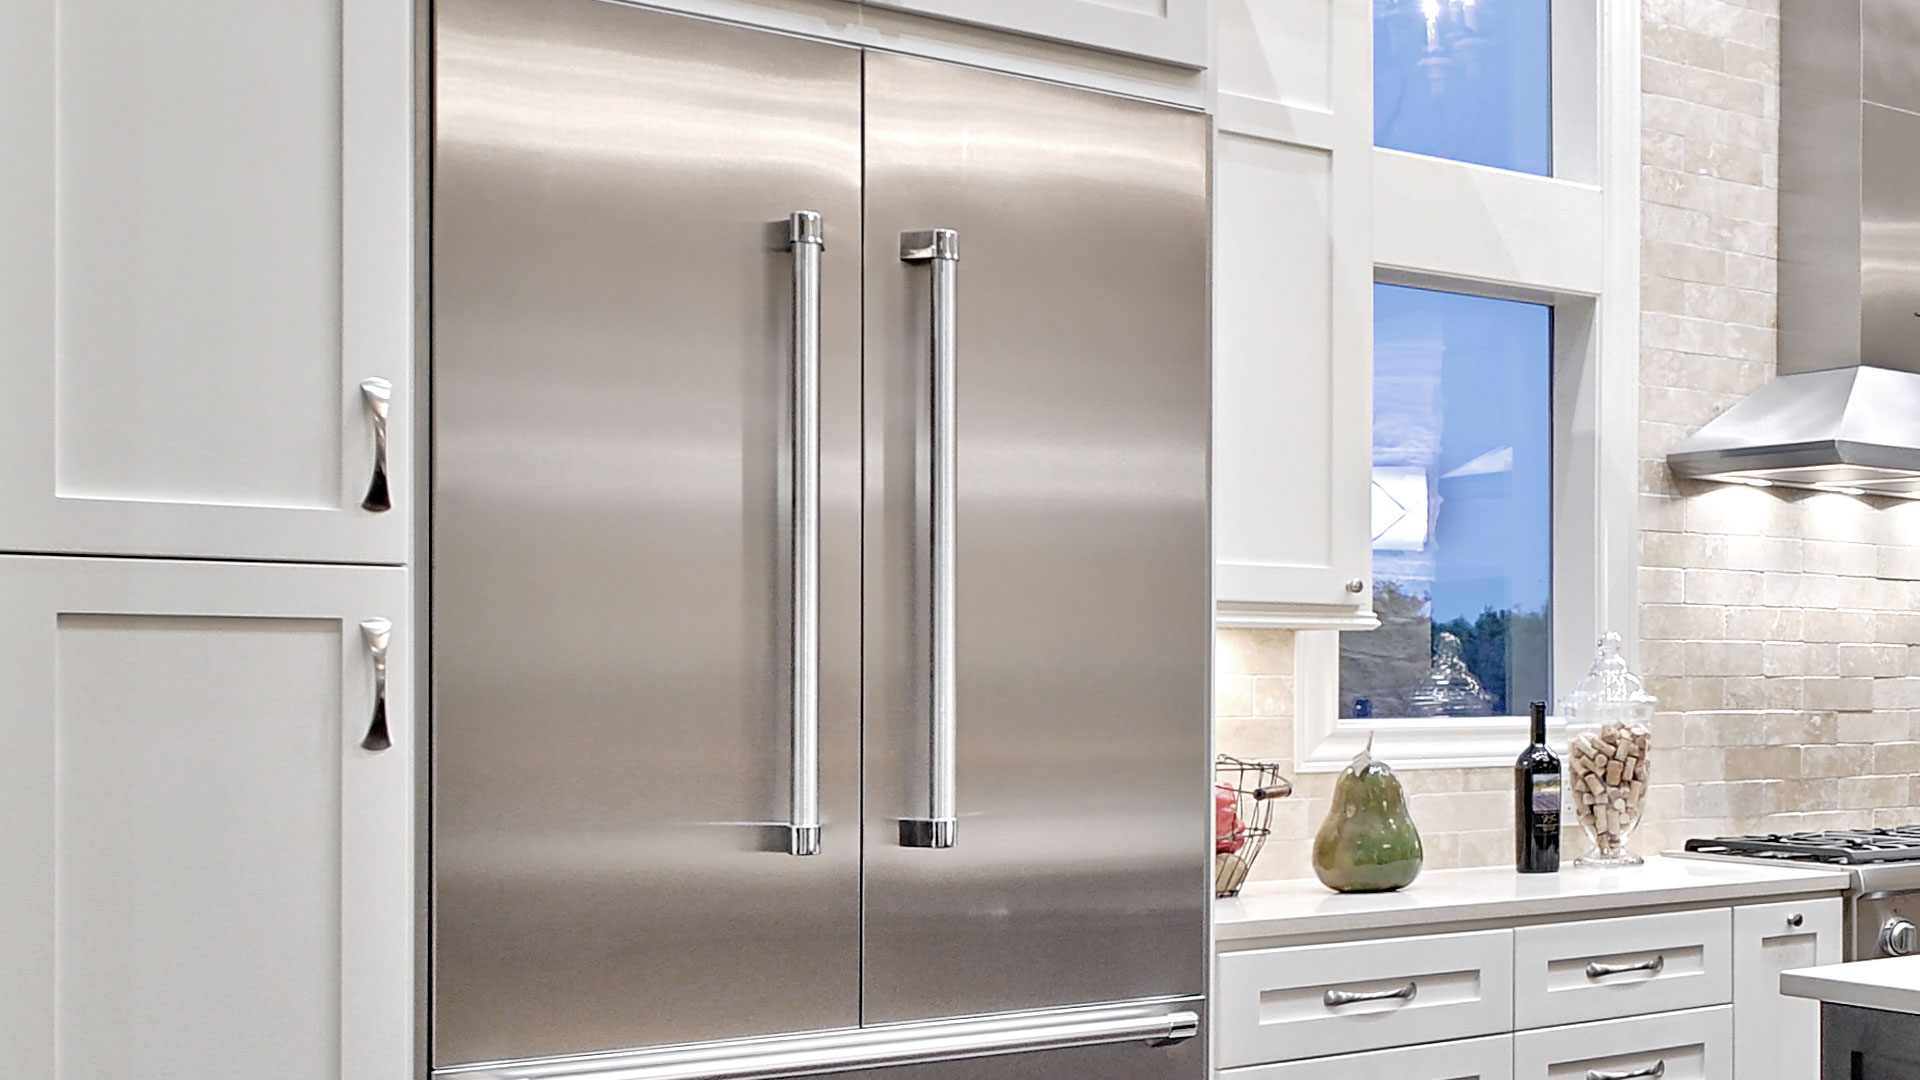 Thermador Appliance Repair Service Chicago   Thermador Appliance Repair Pros